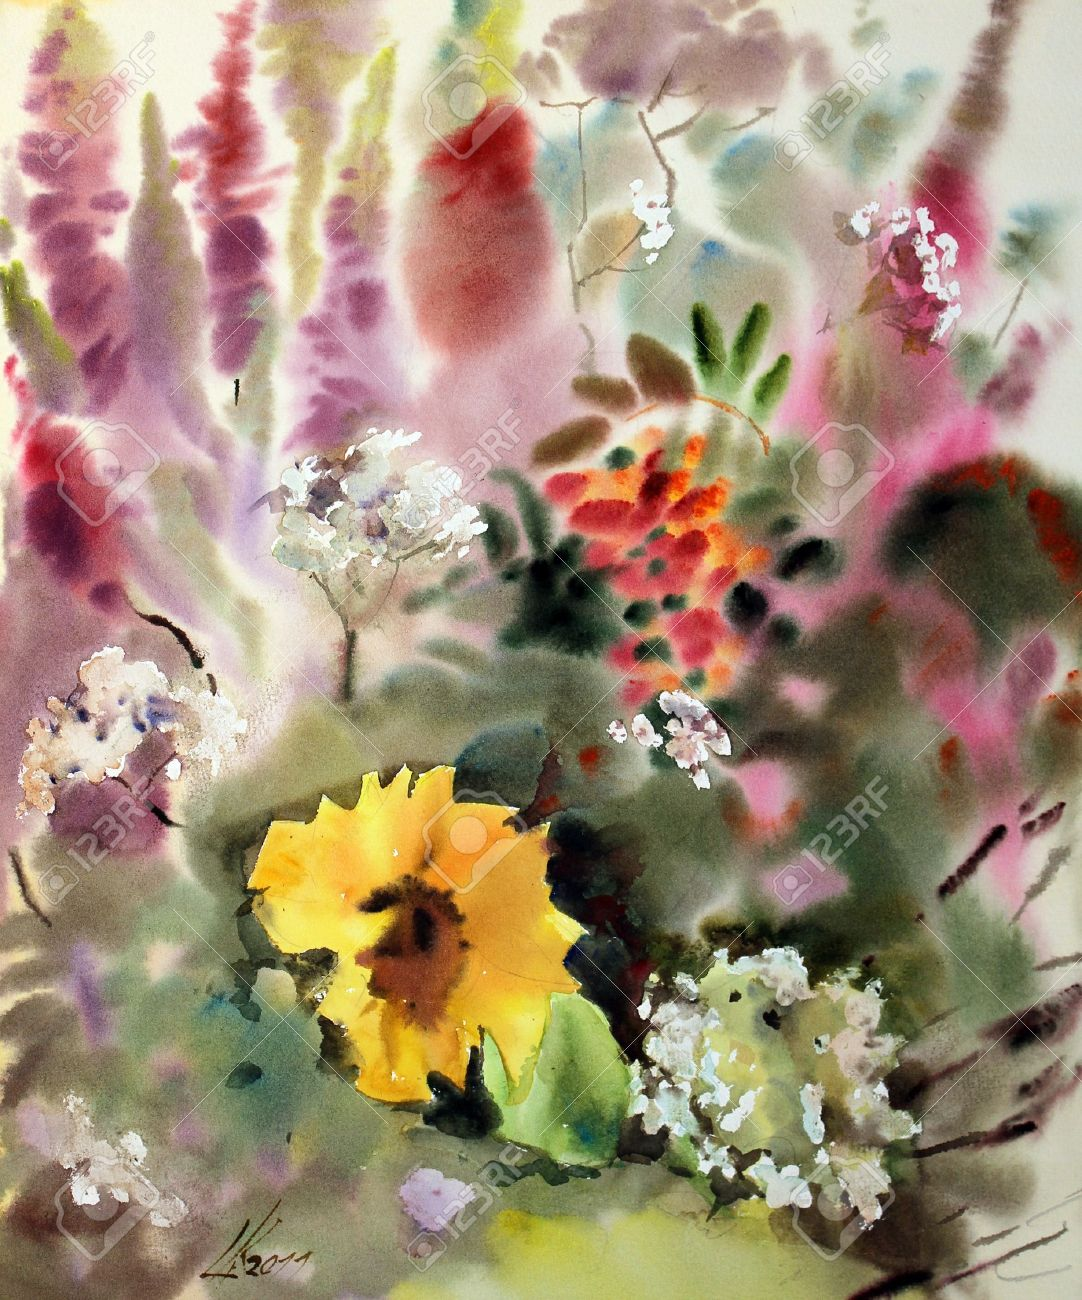 Watercolor painting of the beautiful flowers stock photo picture watercolor painting of the beautiful flowers stock photo 11474507 izmirmasajfo Image collections